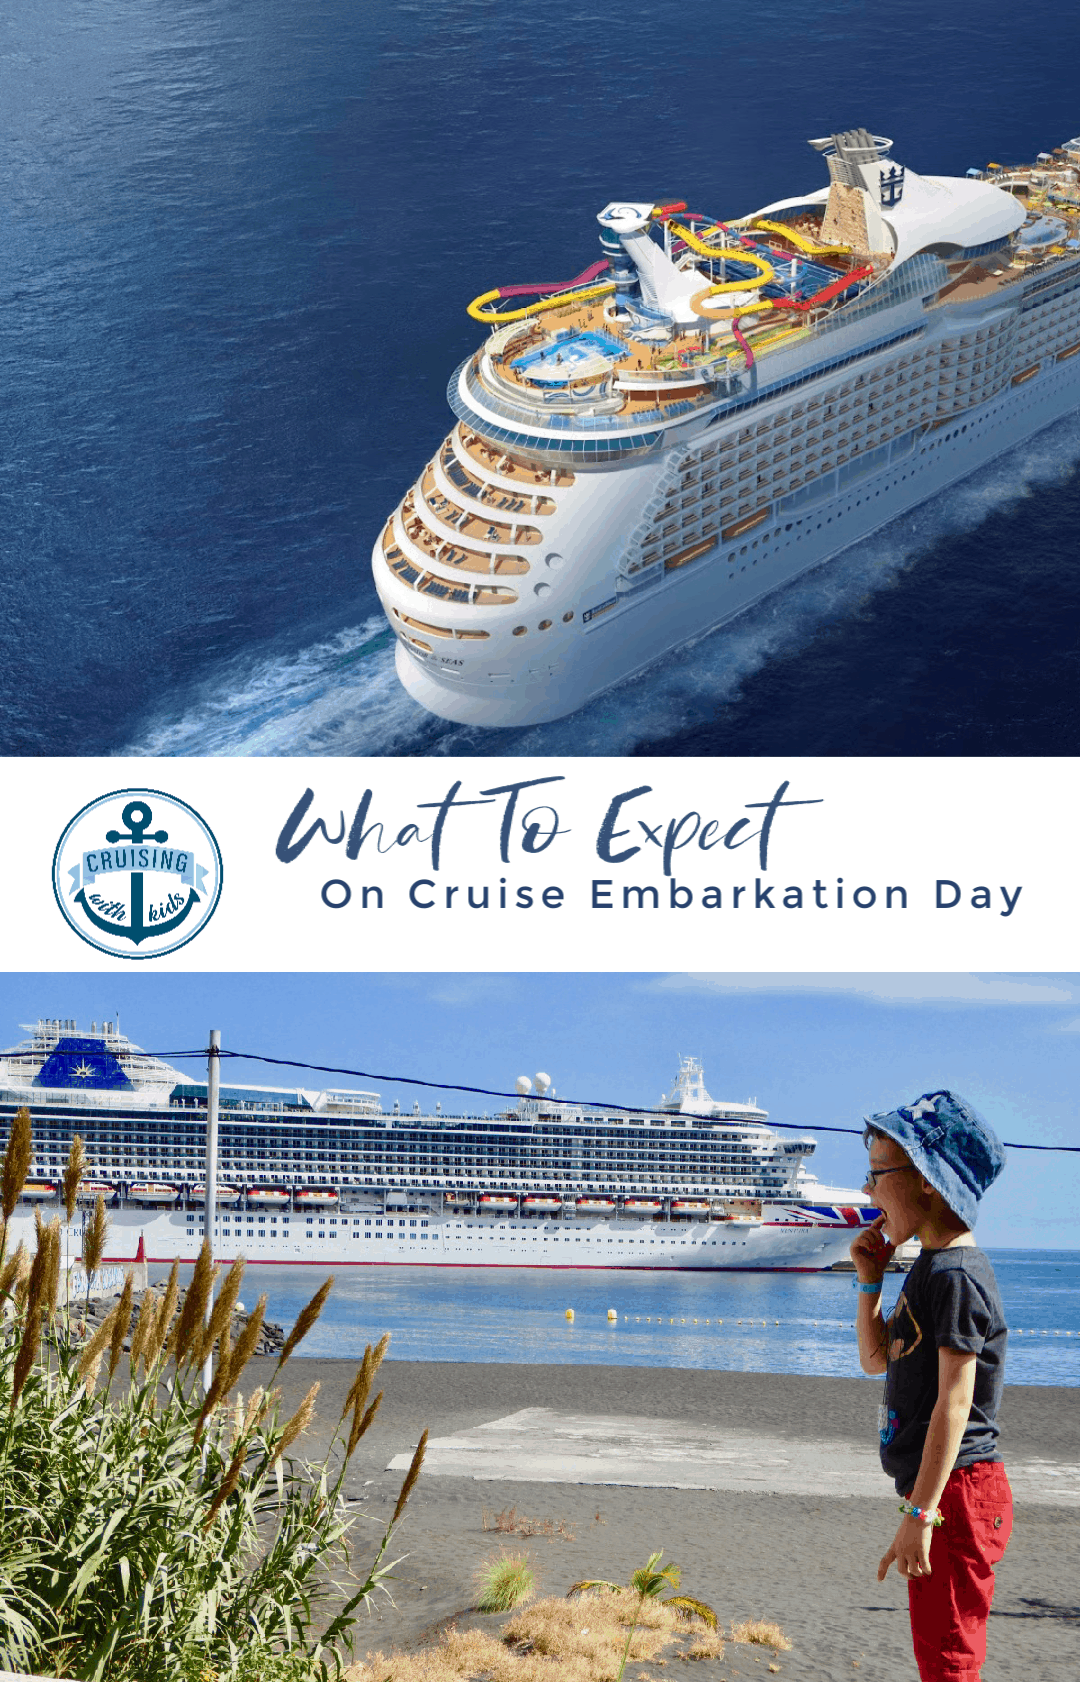 What to expect of cruise embarkation day for families cruising with kids